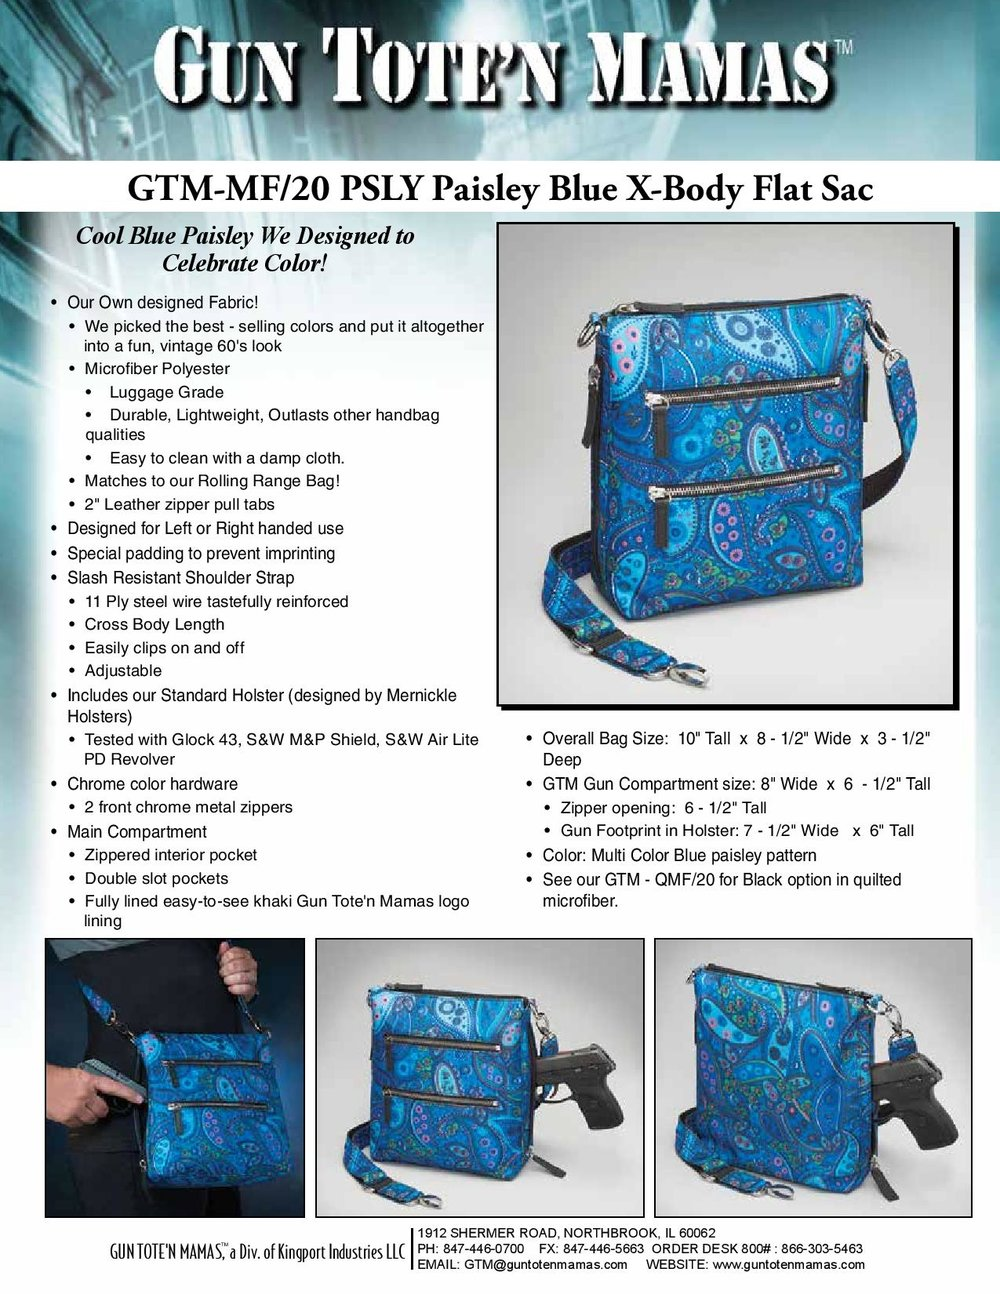 GTM-mf-20-psly_p64-page-001.jpg